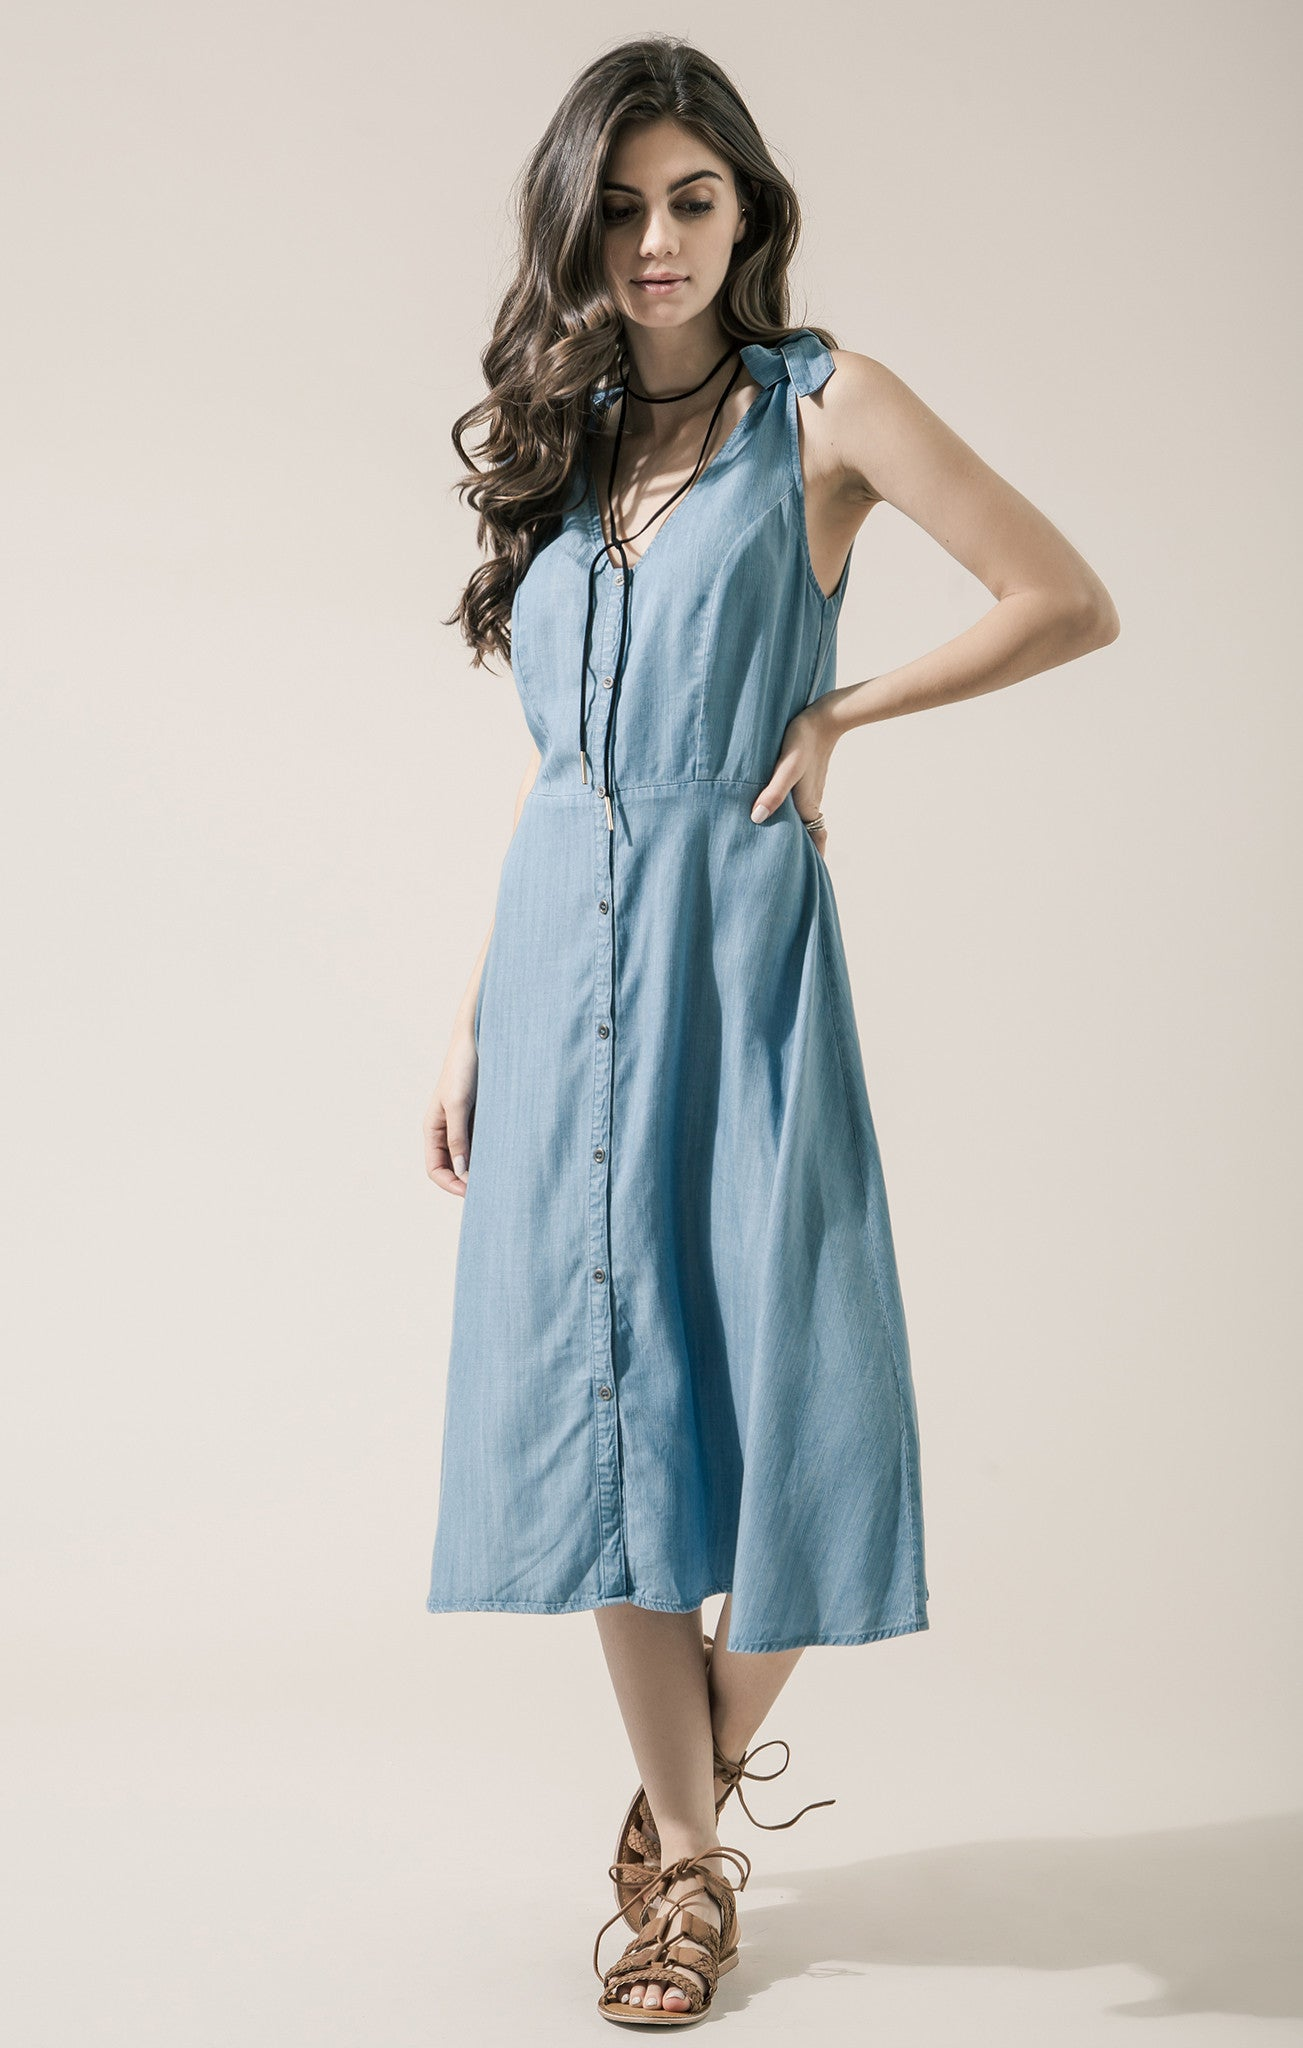 CHAMBRAY DRESS WITH TIE DETAILS